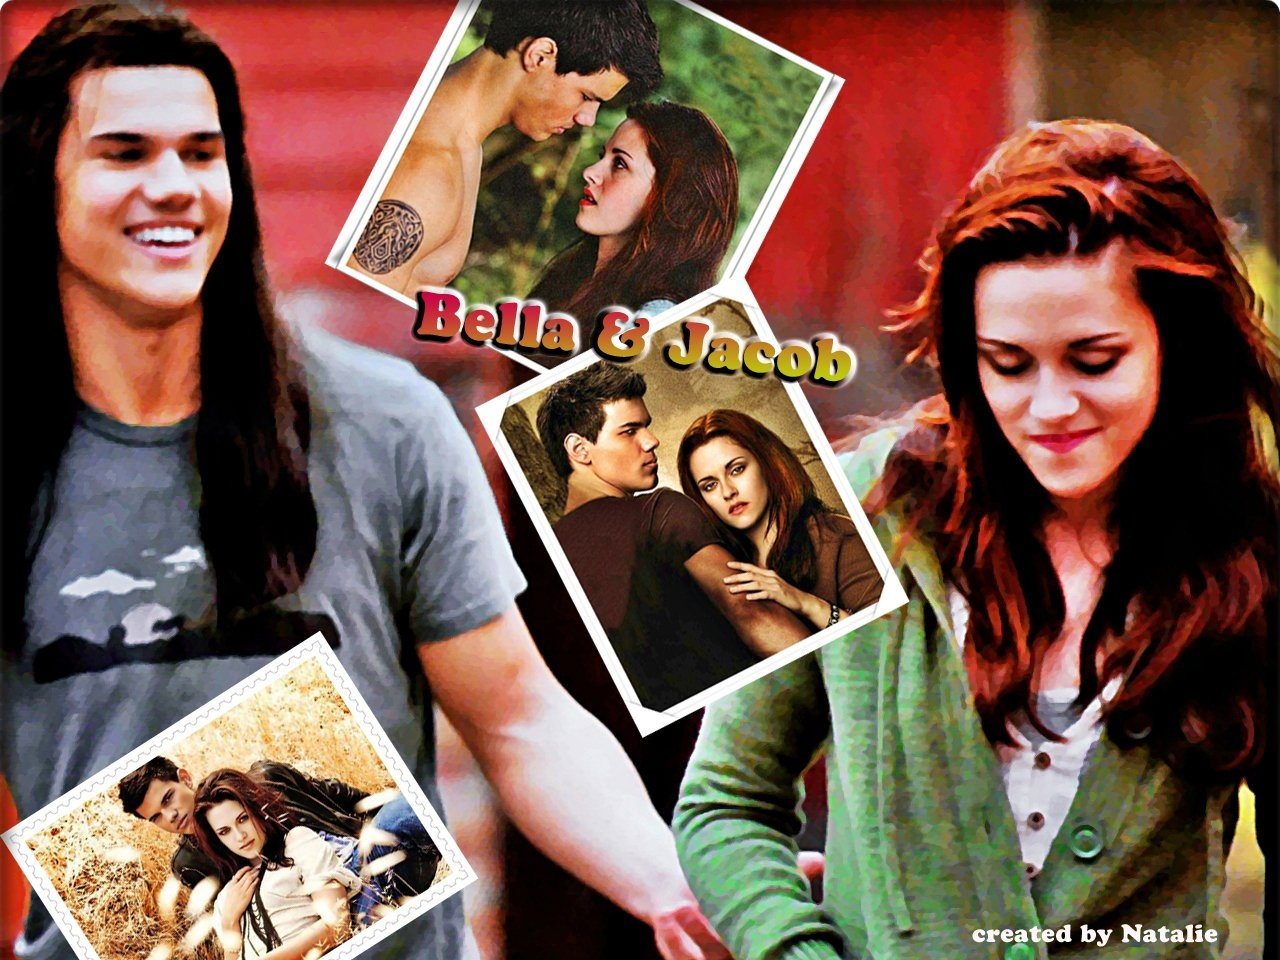 -Bella-Jacob-twilight-series-8466106-1280-960 - сумреки обои